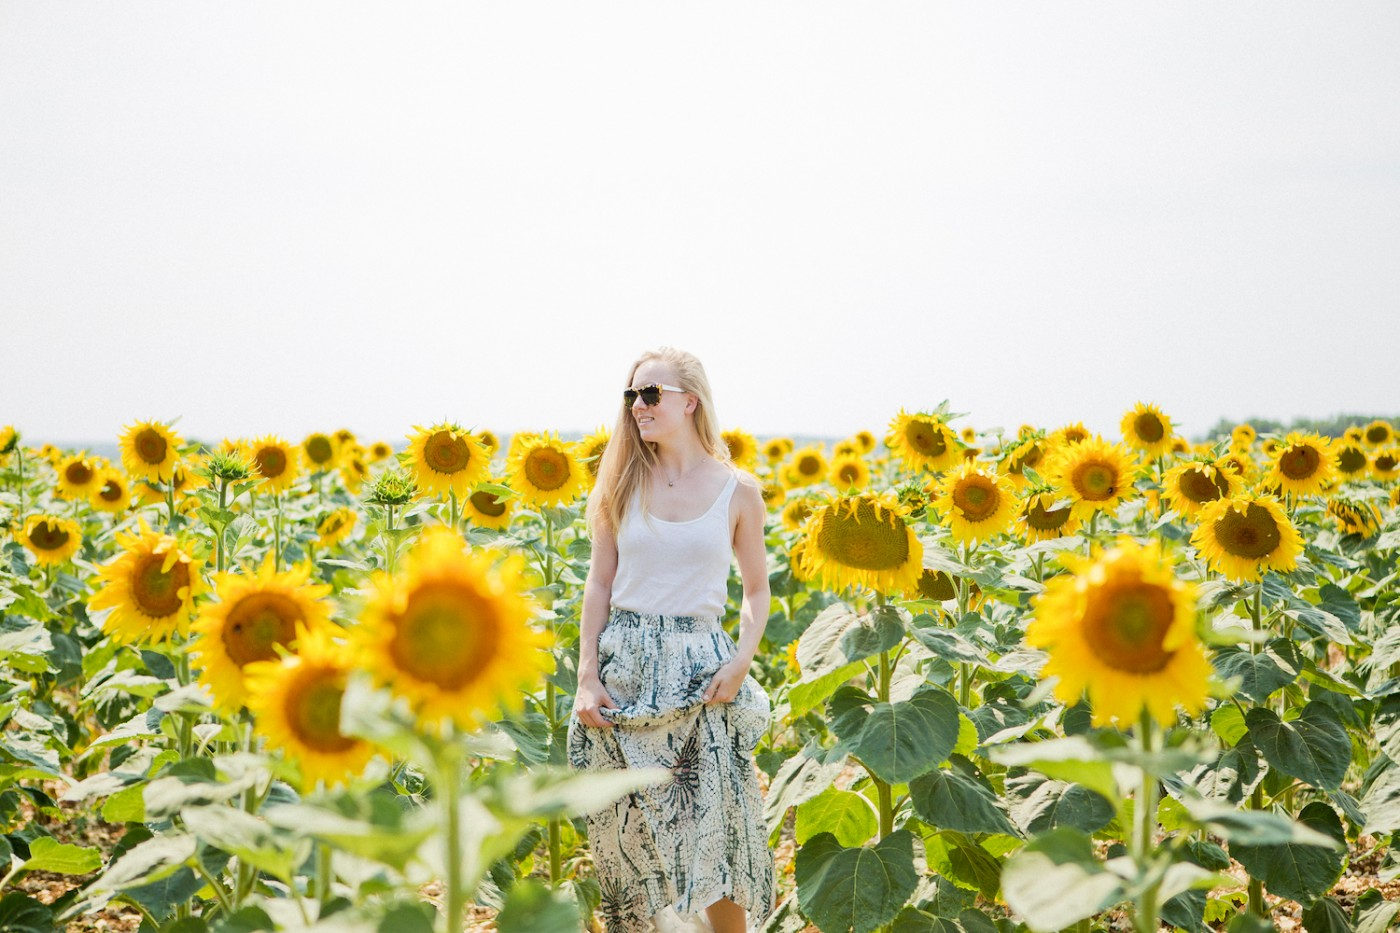 The Golden Bun | sunflower field France, turnesol France, Sonnenblumenfeld Frankreich